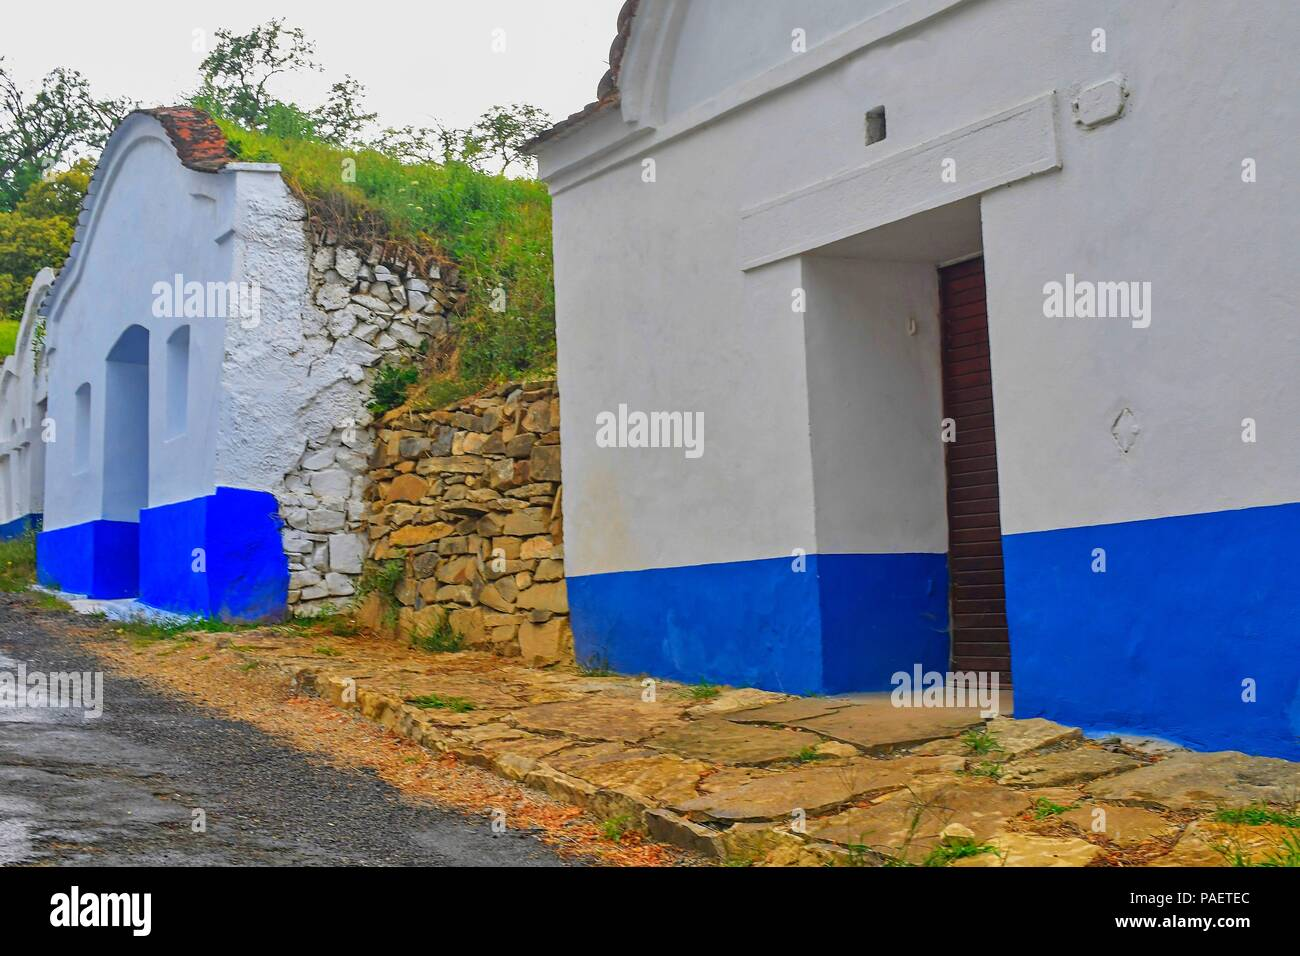 Traditional Wine Cellars - Plze, Petrov, Czech Republic, Europe. Wine lore and folklore. Moravian wine cellars. Stock Photo